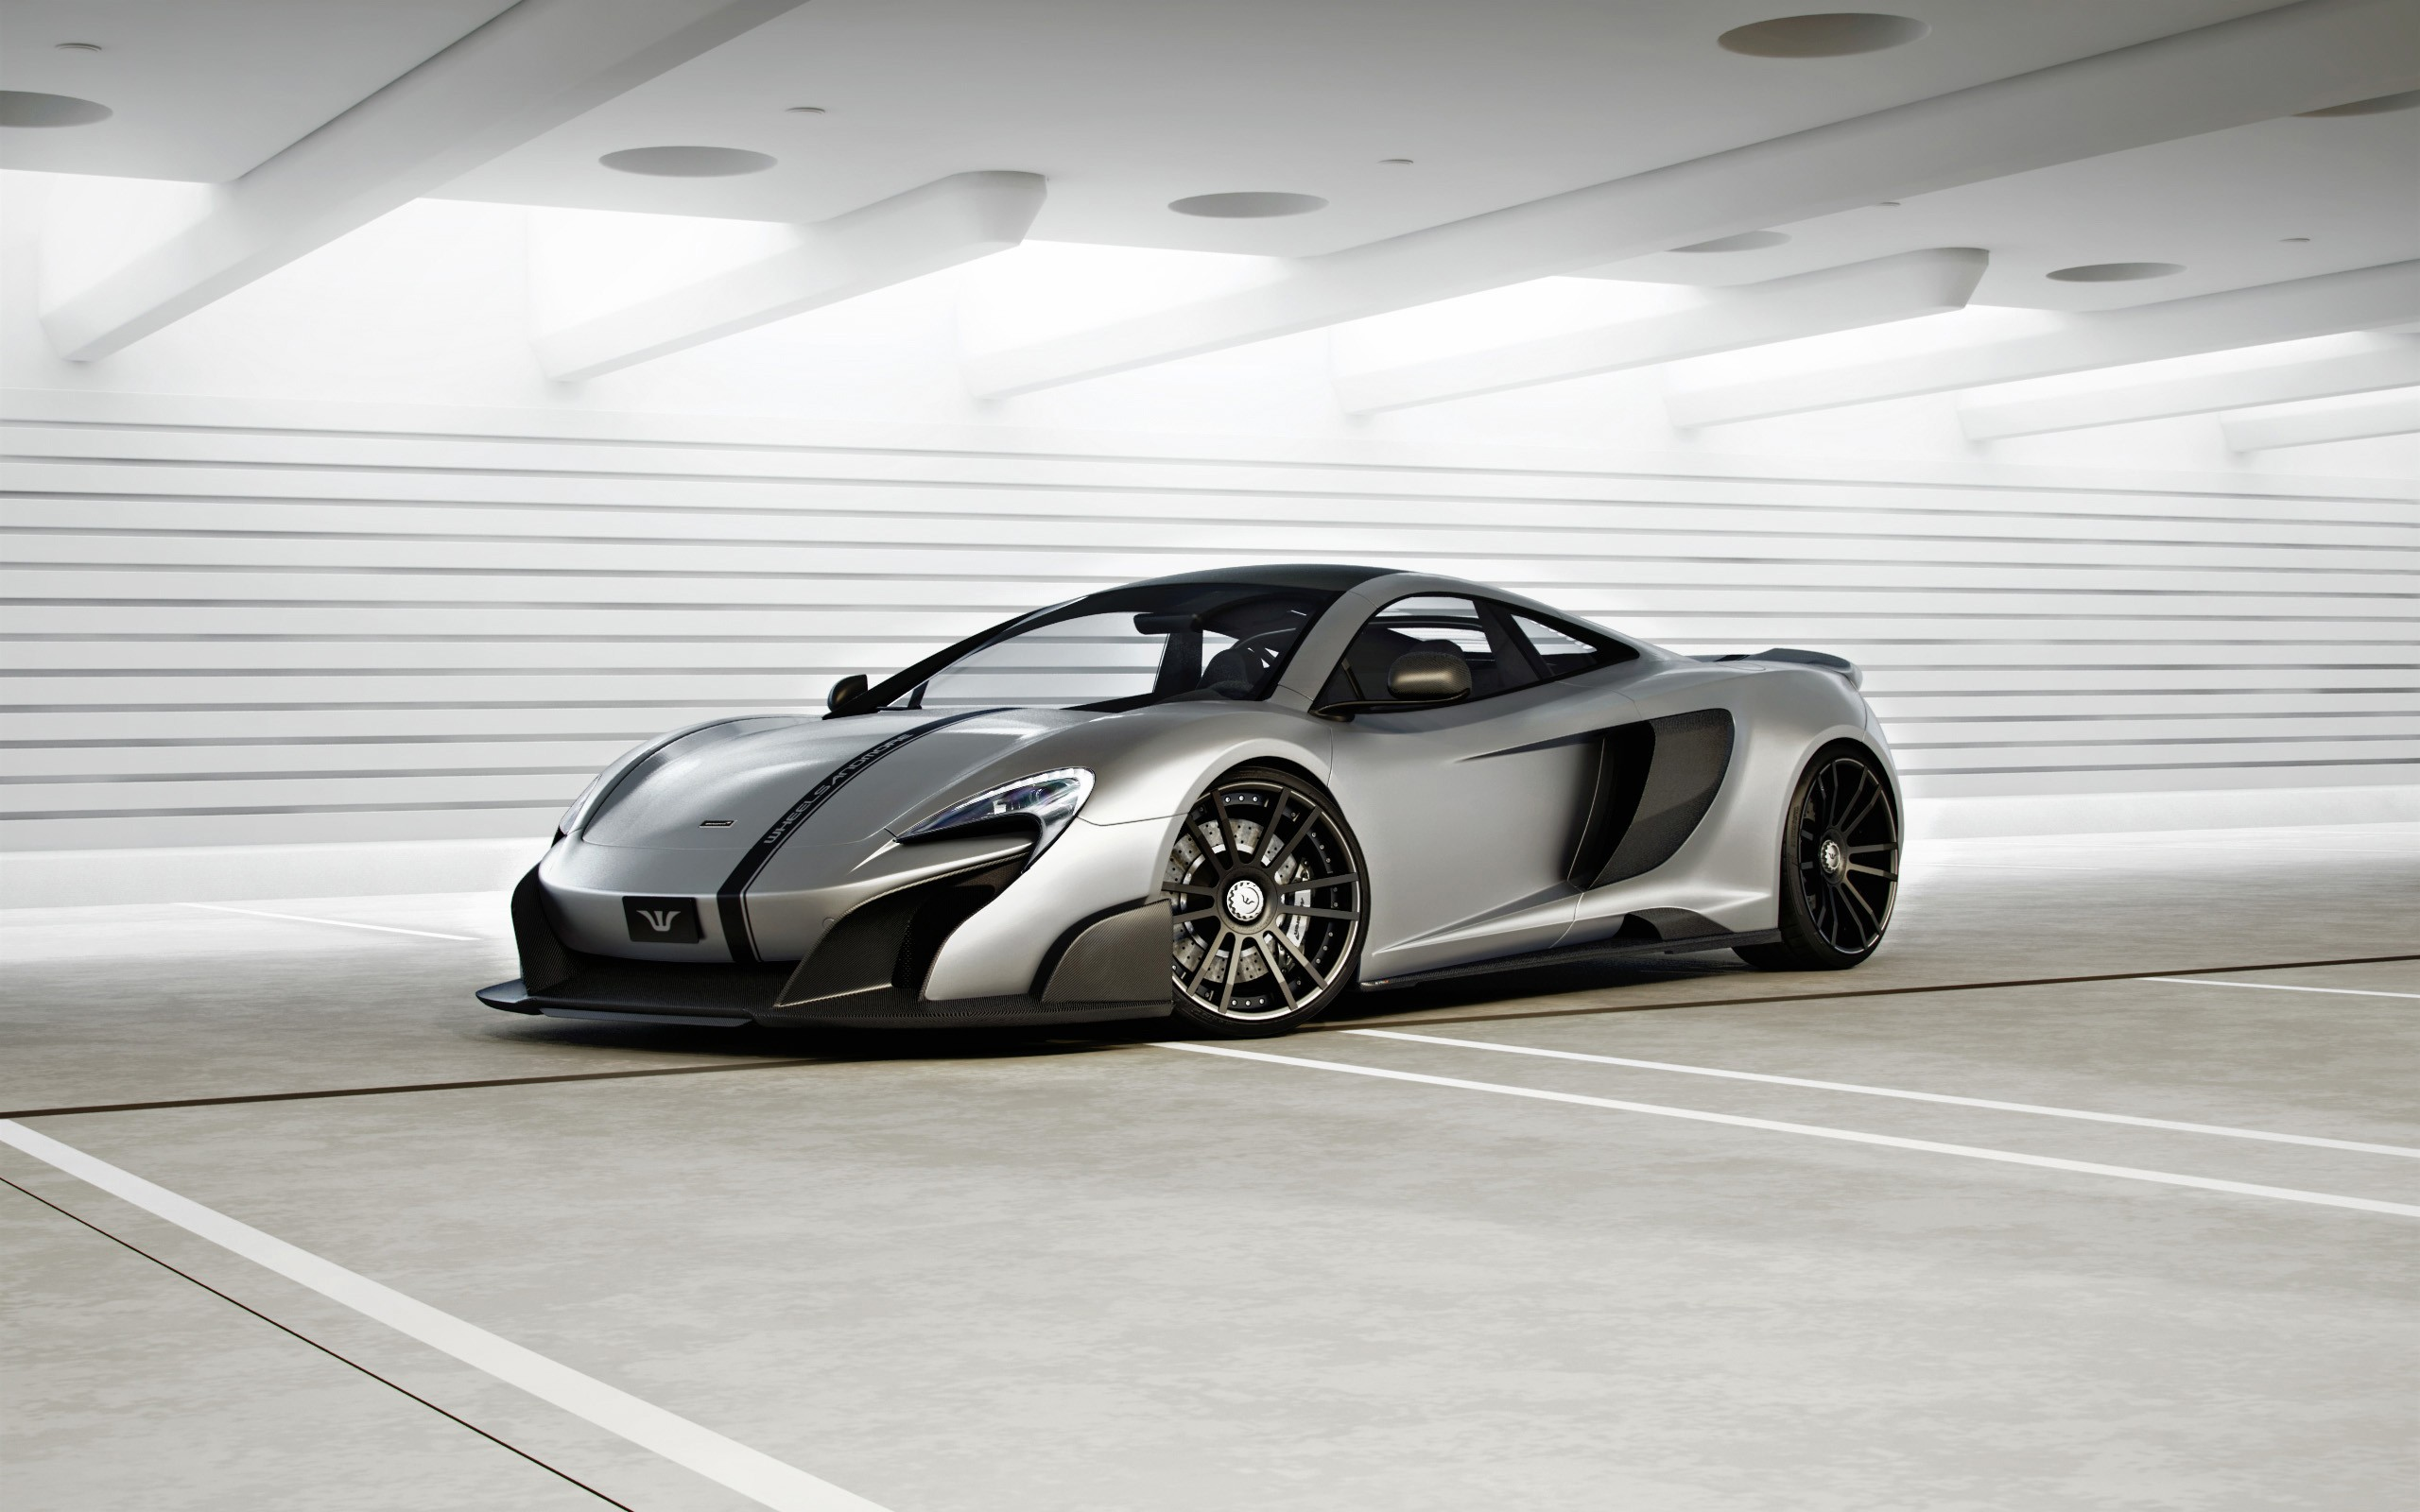 High Quality Car Pictures And Car Wallpapers 2015 Wheelsandmore Mclaren 720 Lt Wallpaper Hd Car